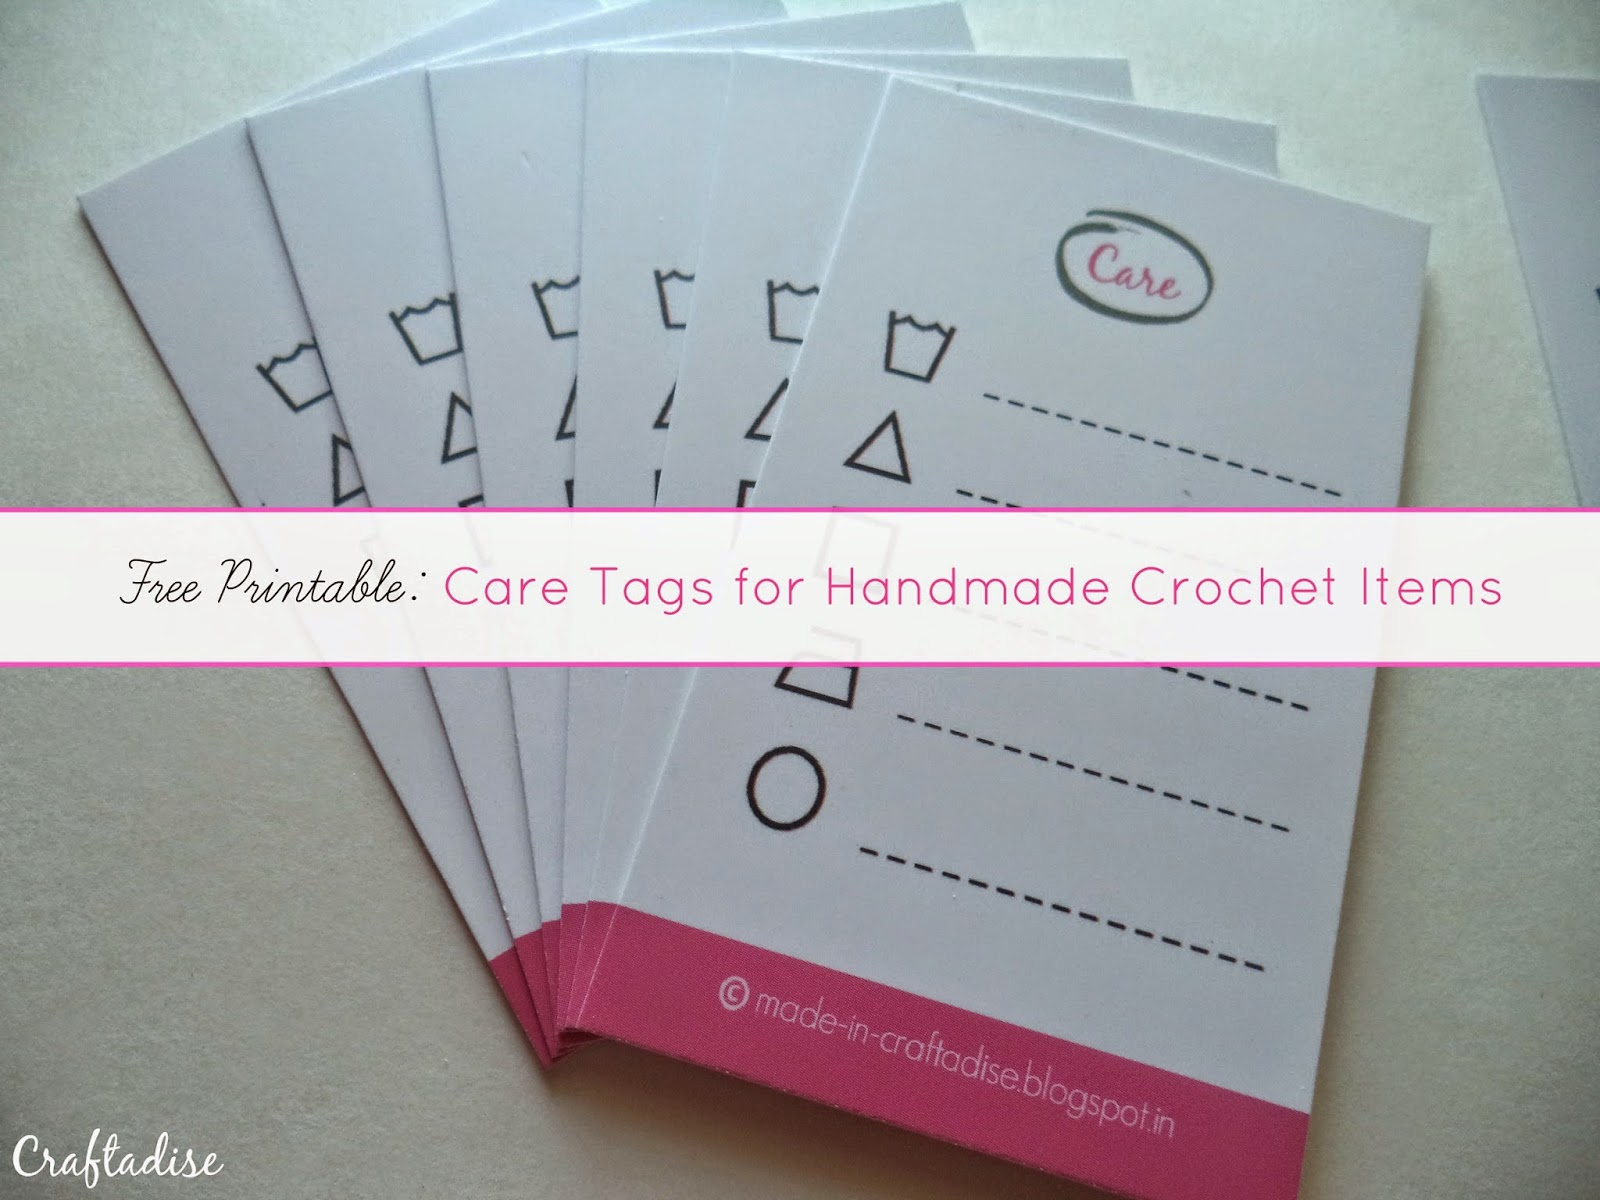 Care Tags for Handmade Crochet Items : Free Printable